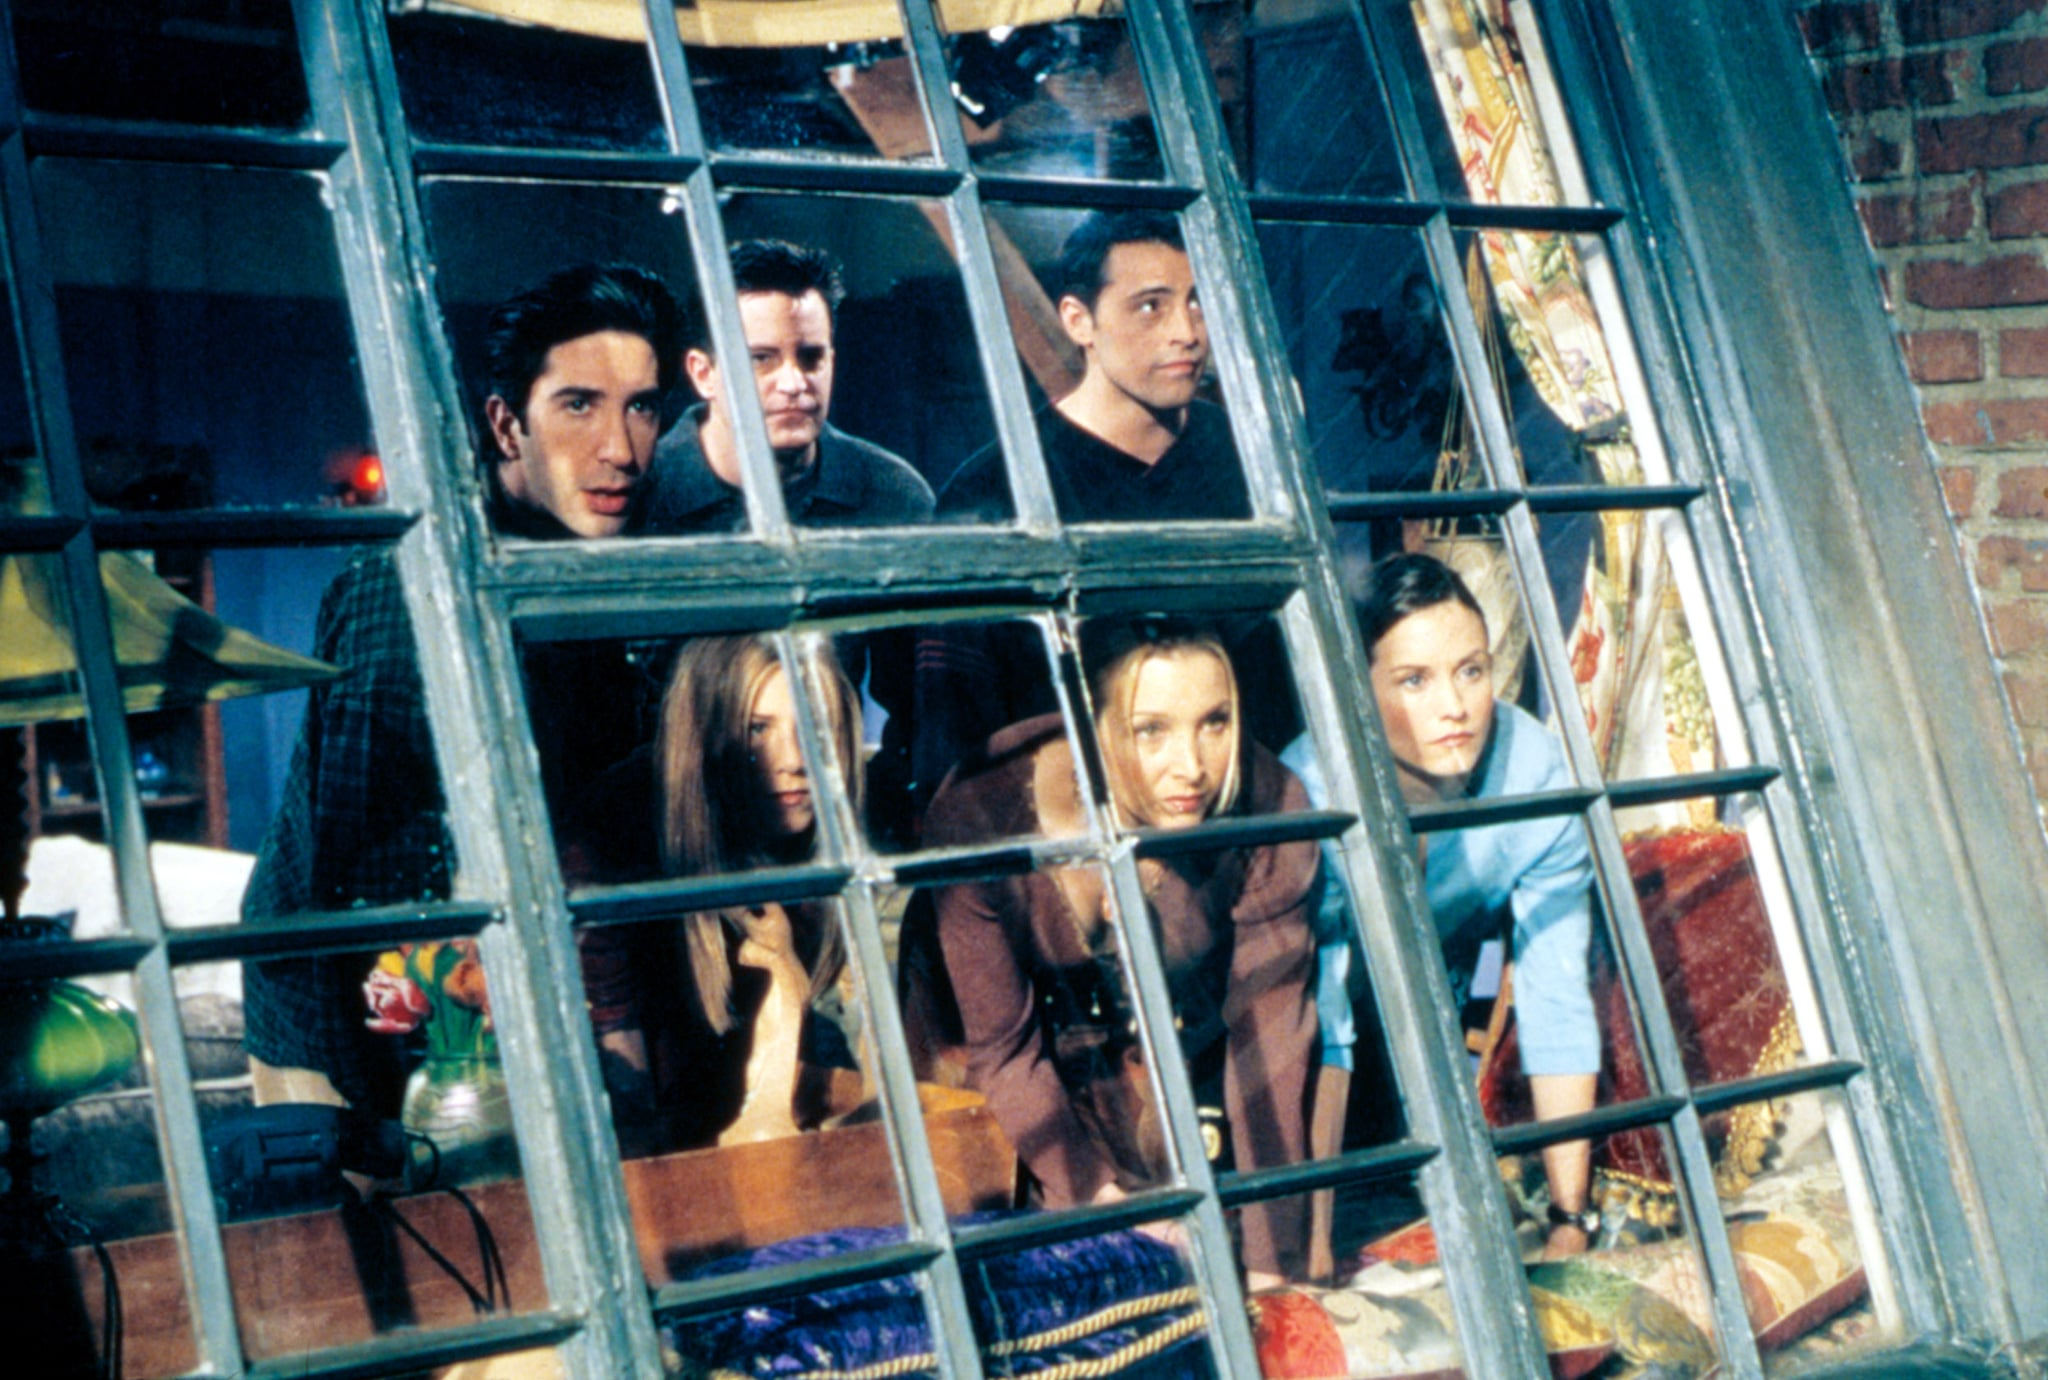 FRIENDS, David Schwimmer, Matthew Perry, Matt LeBlanc, Jennifer Aniston, Lisa Kudrow, Courteney Cox, 'The One Where Everybody Finds Out', Season 5, ep. 14, 1994-2004,  Warner Bros. / Courtesy: Everett Collection